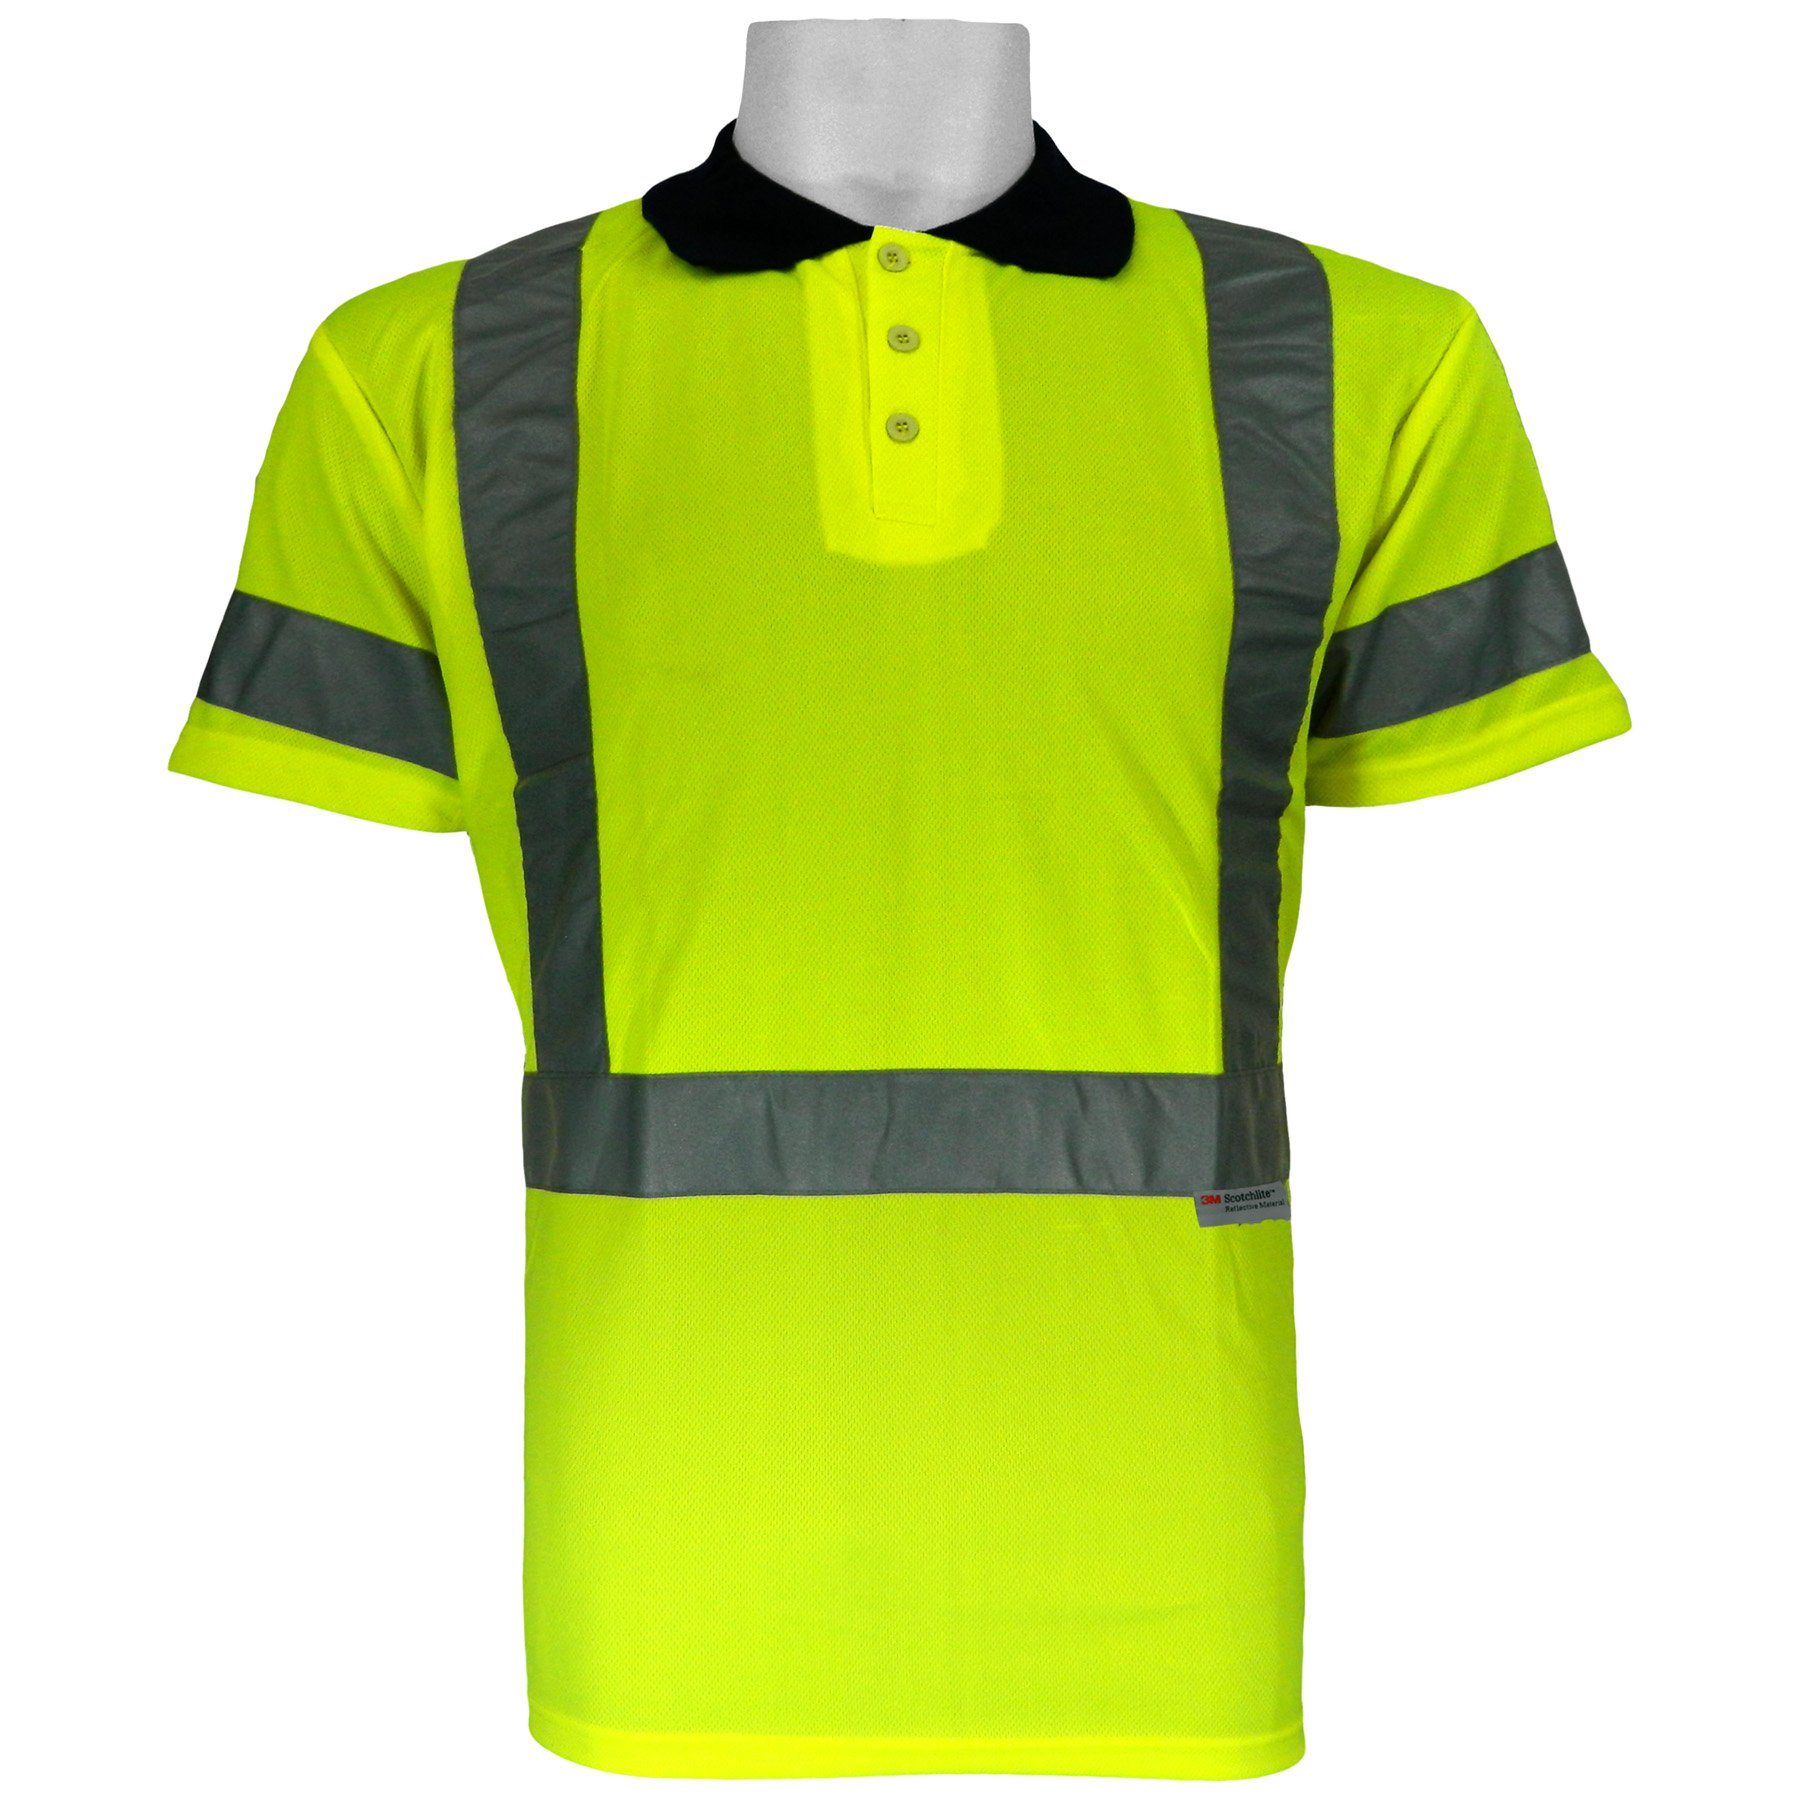 Global Glove GLO-009 FrogWear Class 3 Polo/Golf Style High Visibility Safety T-Shirt with 3M Scotchlite Reflective, Extra Large, Lime (Case of 100) by Global Glove (Image #1)